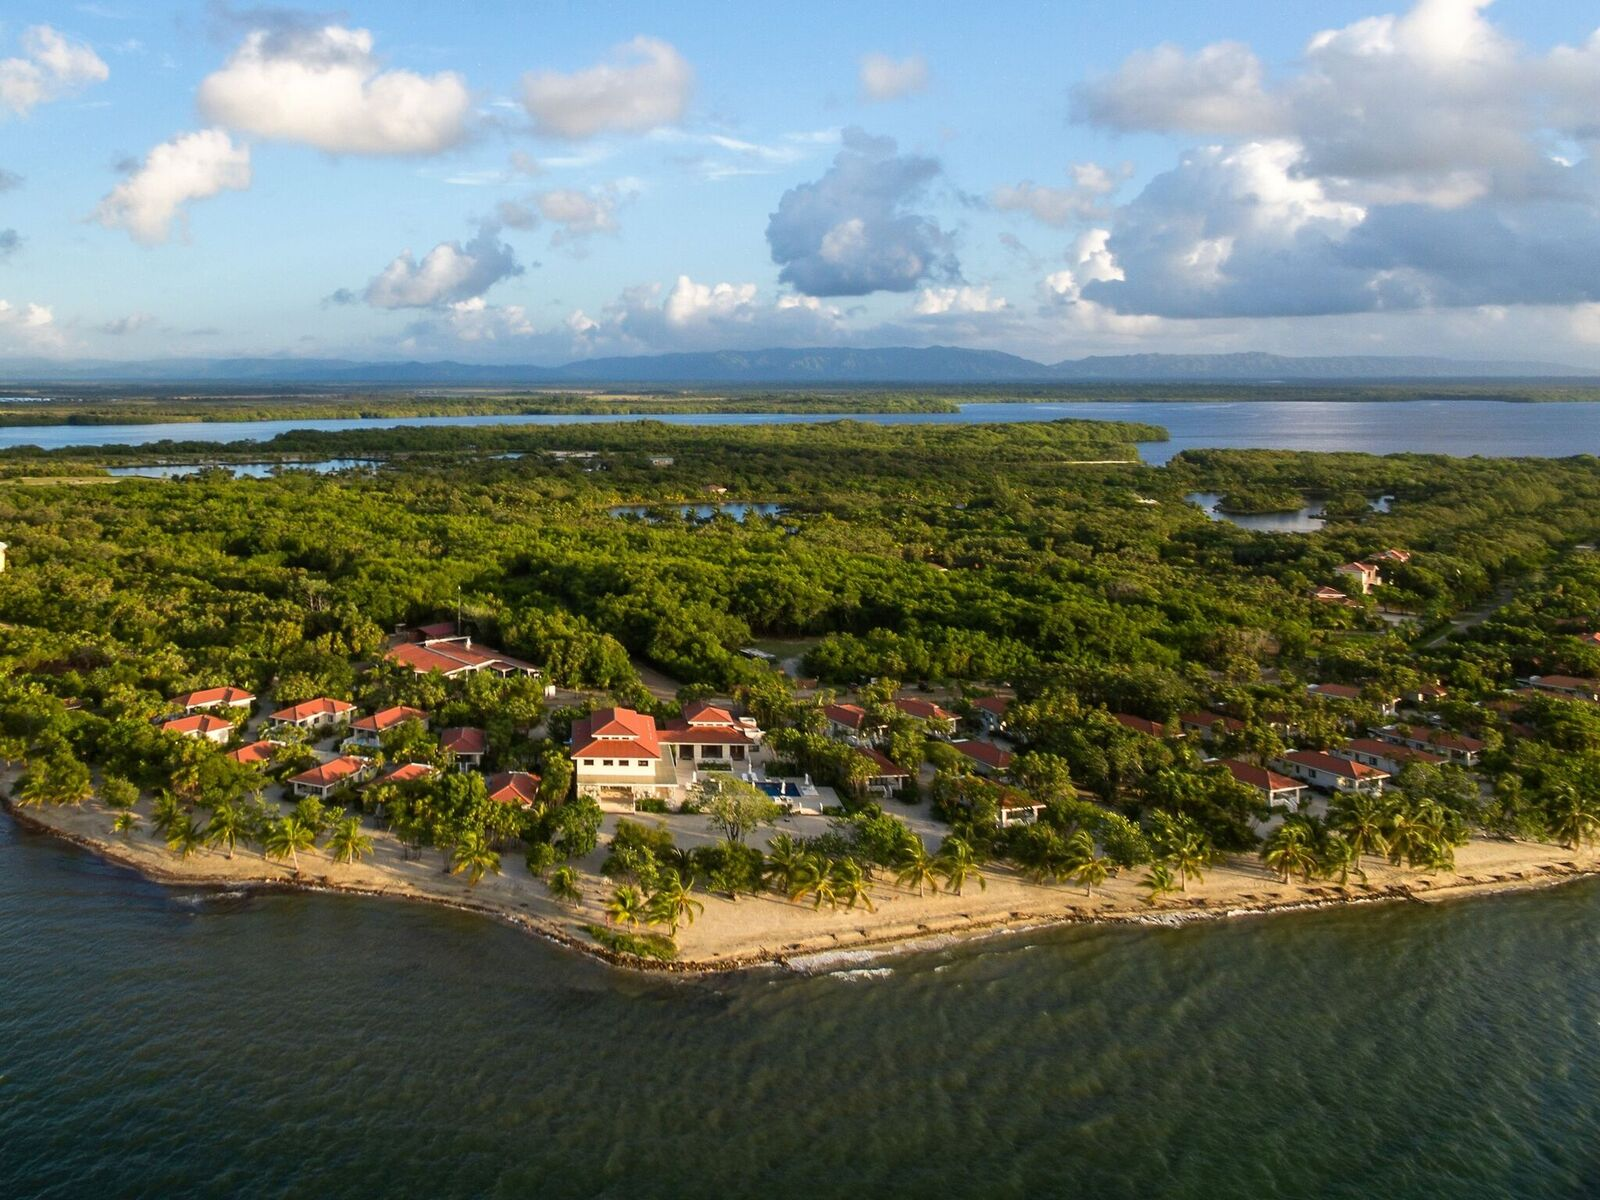 AERIAL VIEW OF NAIA RESORT & SPA IN PLACENCIA